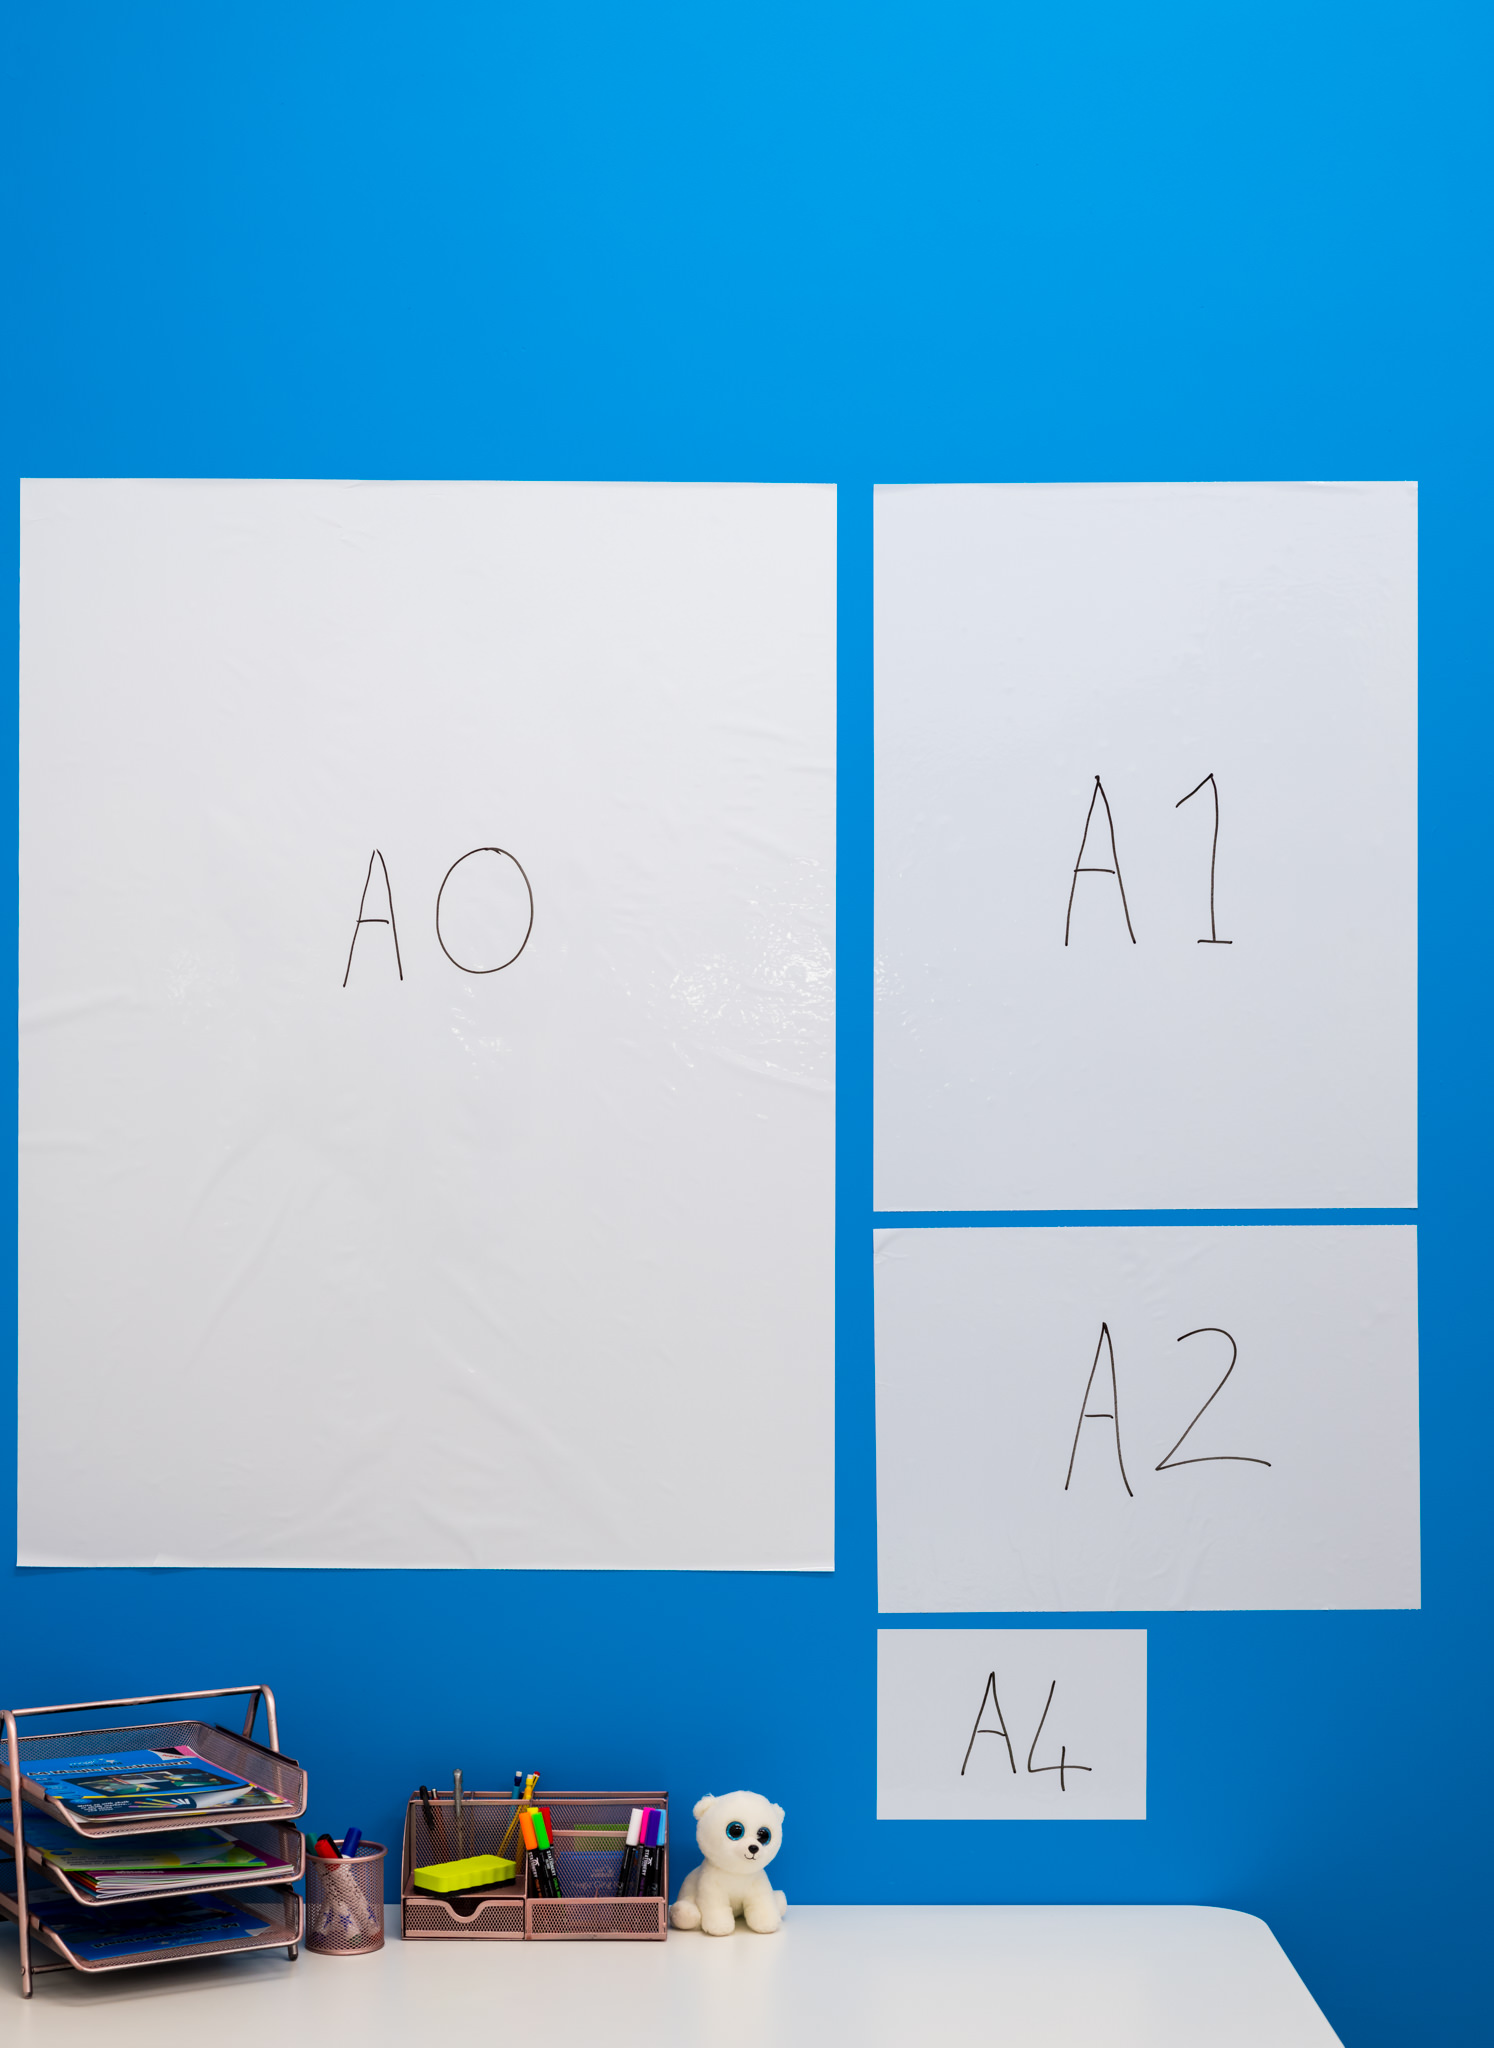 A0, A1, A2 and A4 Magic Whiteboard